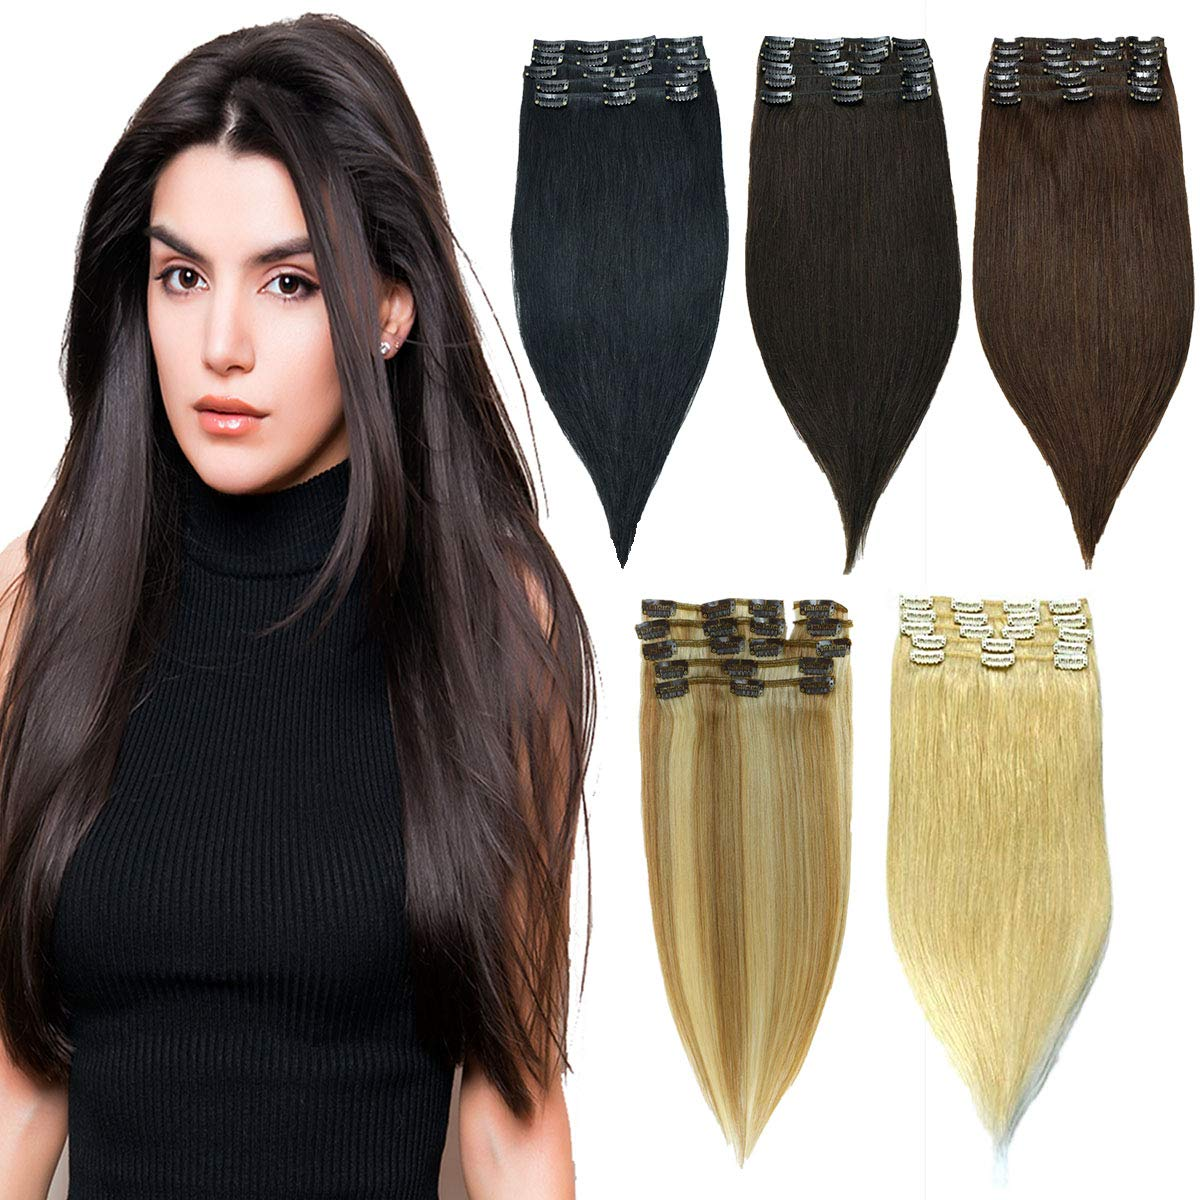 HAIRREAL Clip in Hair Extensions Remy Human Hair for Women Full Head Thick Straight Real Human Hair Clip in Extensions 8pcs Set 14-22 Inch